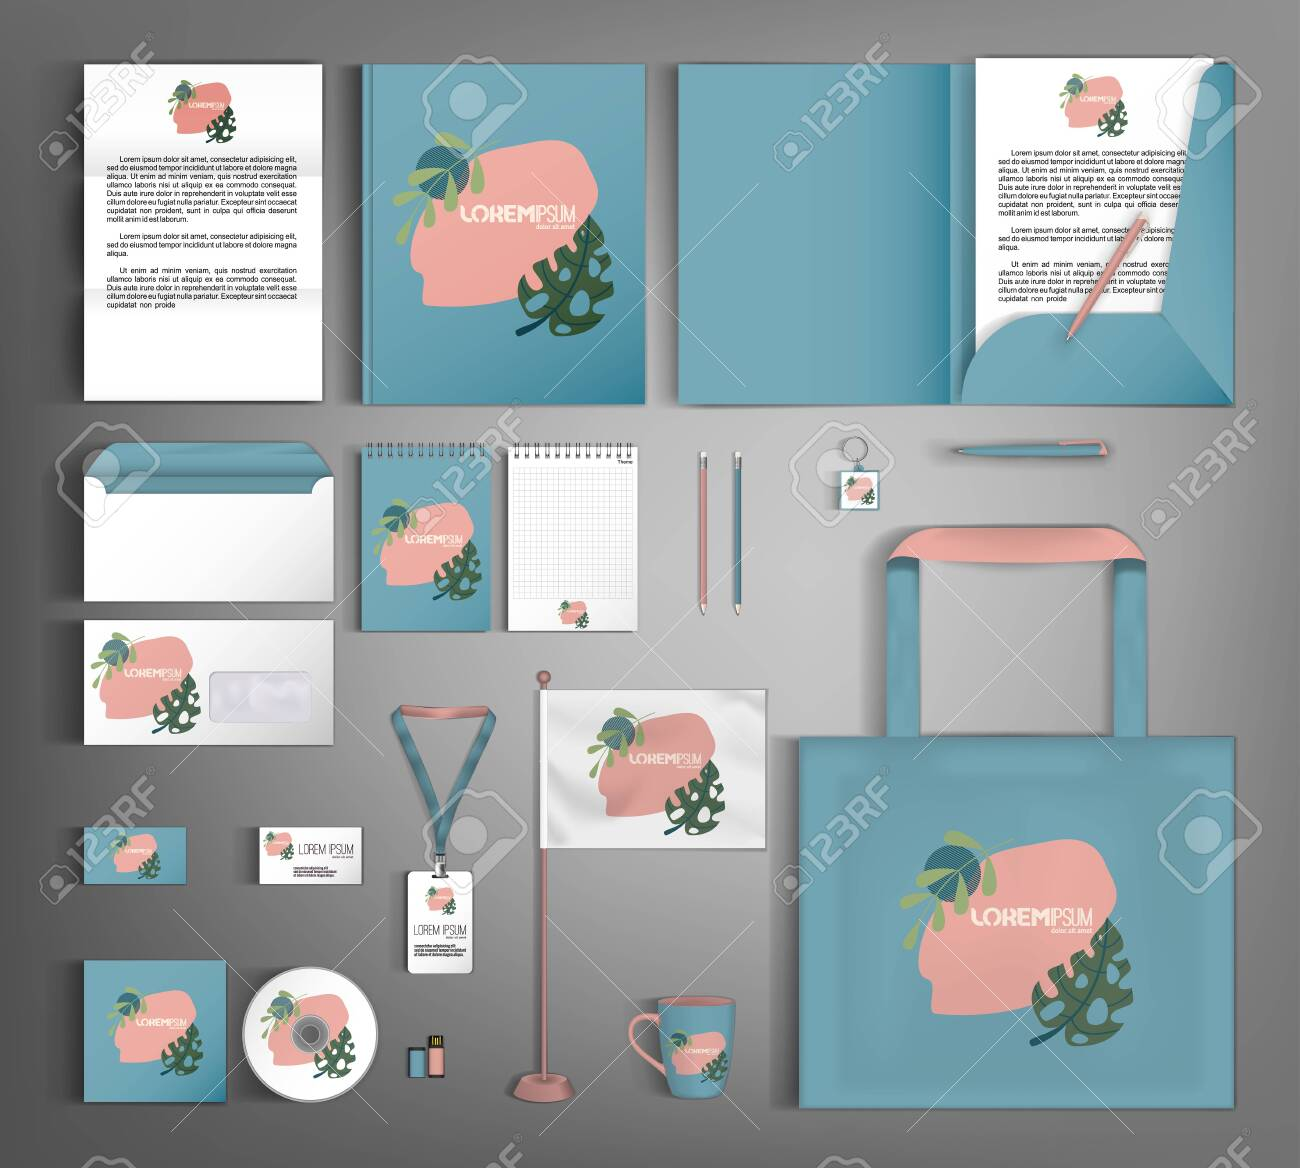 Corporate identity template with minimalist style floral ornament. Set of business office supplies. - 157164296